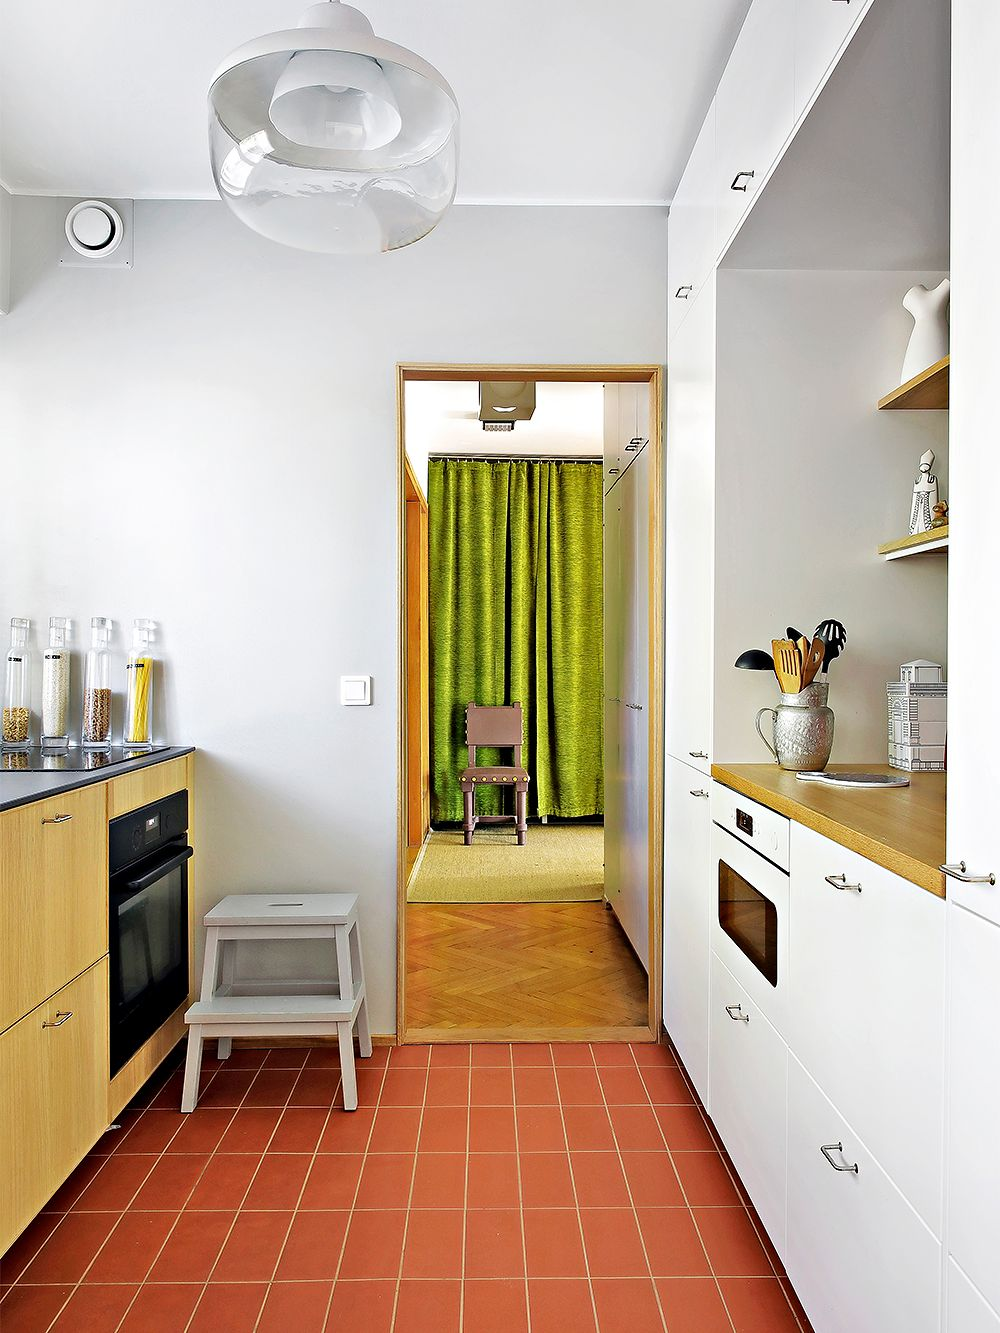 Brick-colored tiles in the kitchen